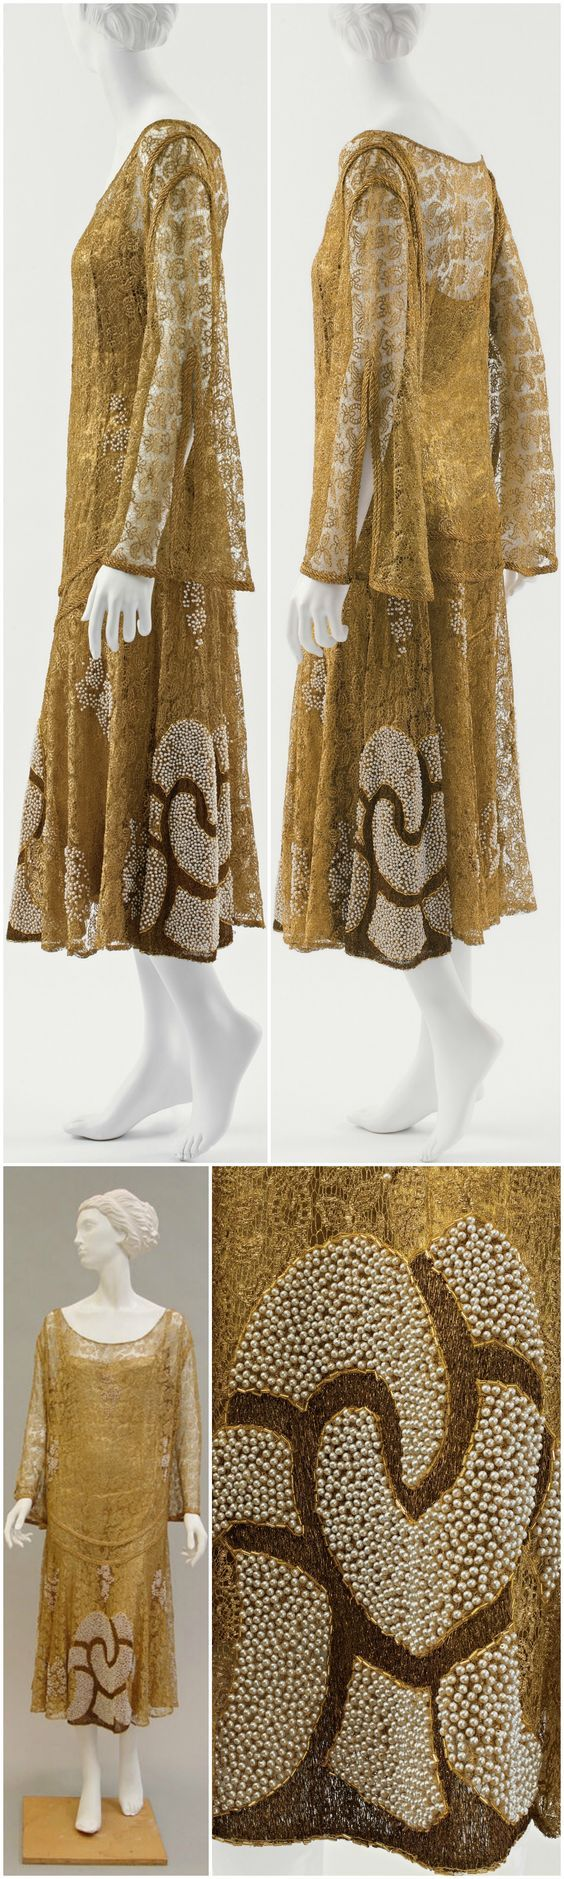 Evening dress, by Paul Poiret, c. 1925, at the Metropolitan Museum of Art. Metallic, simulated pearls. CLICK THROUGH FOR BIGGER IMAGES.